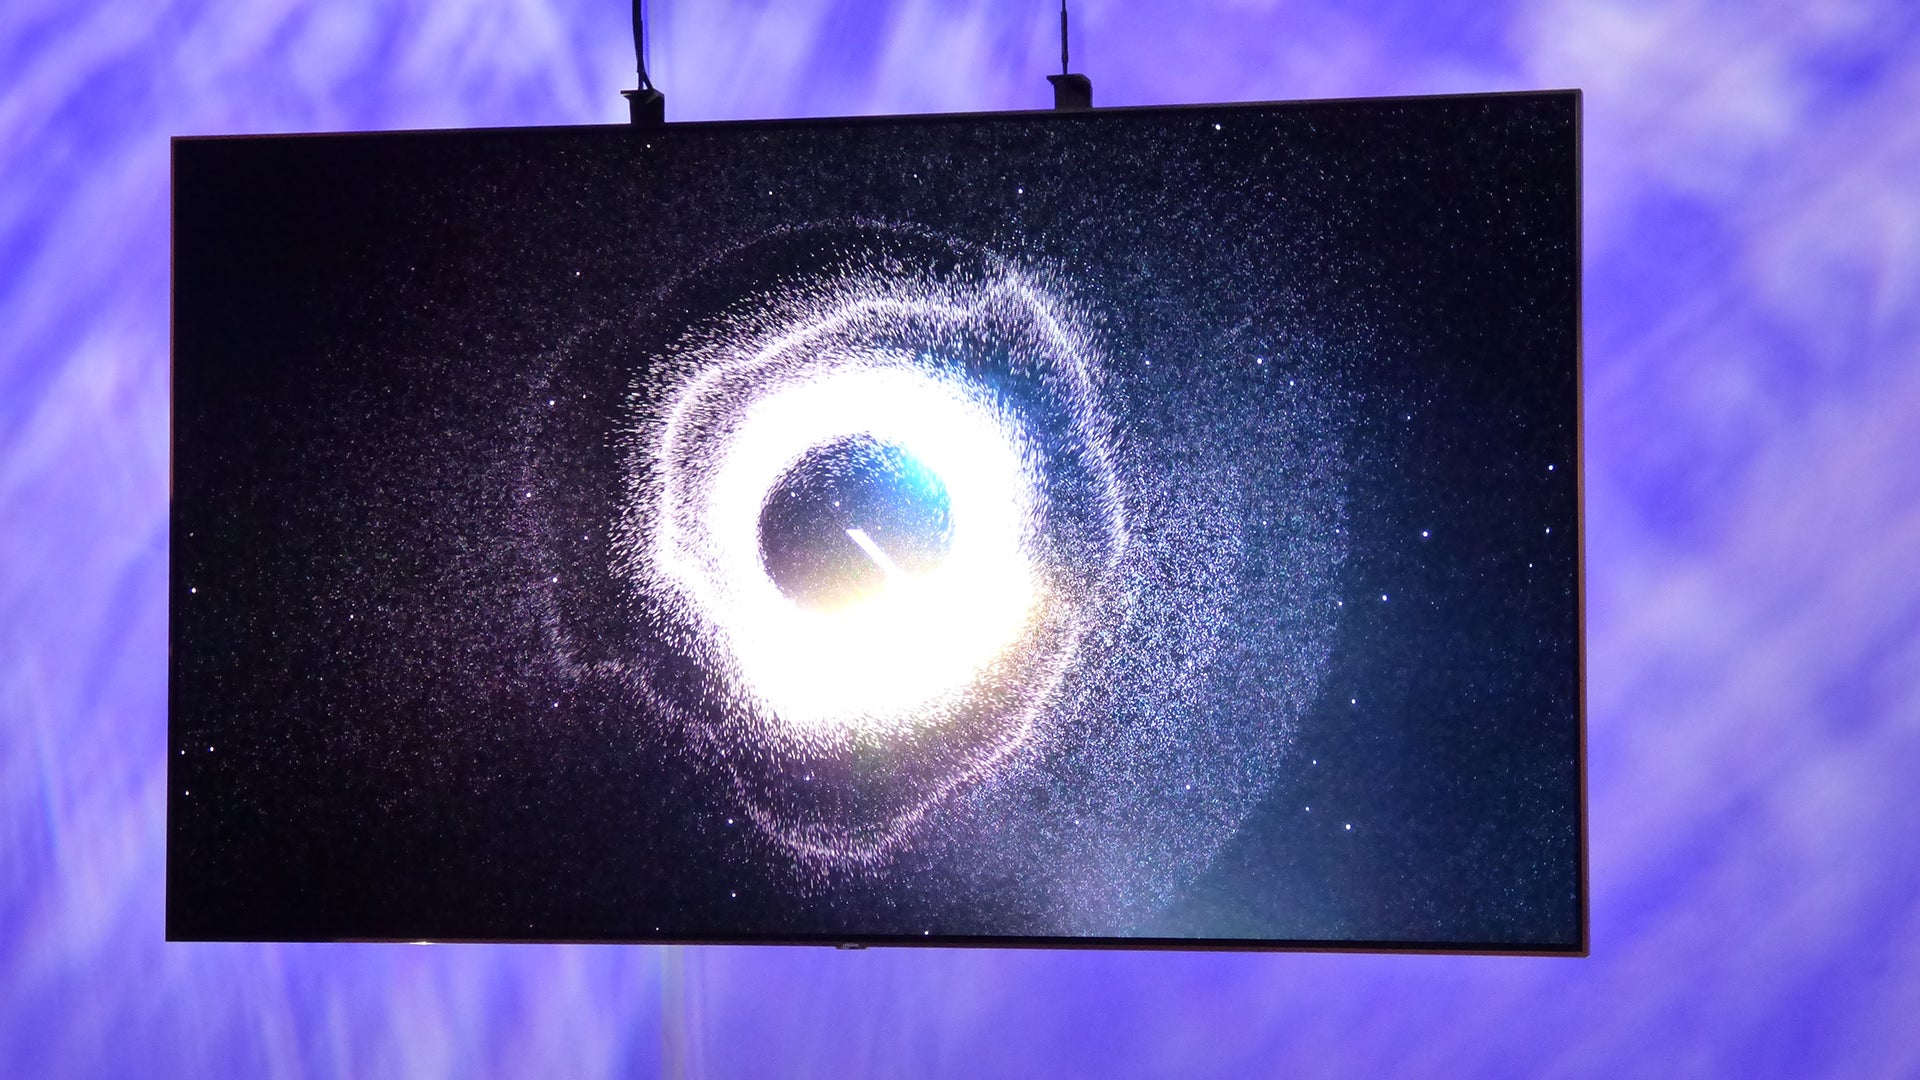 Samsung S Qled Screens May Be The Tv Tech To Rule Them All